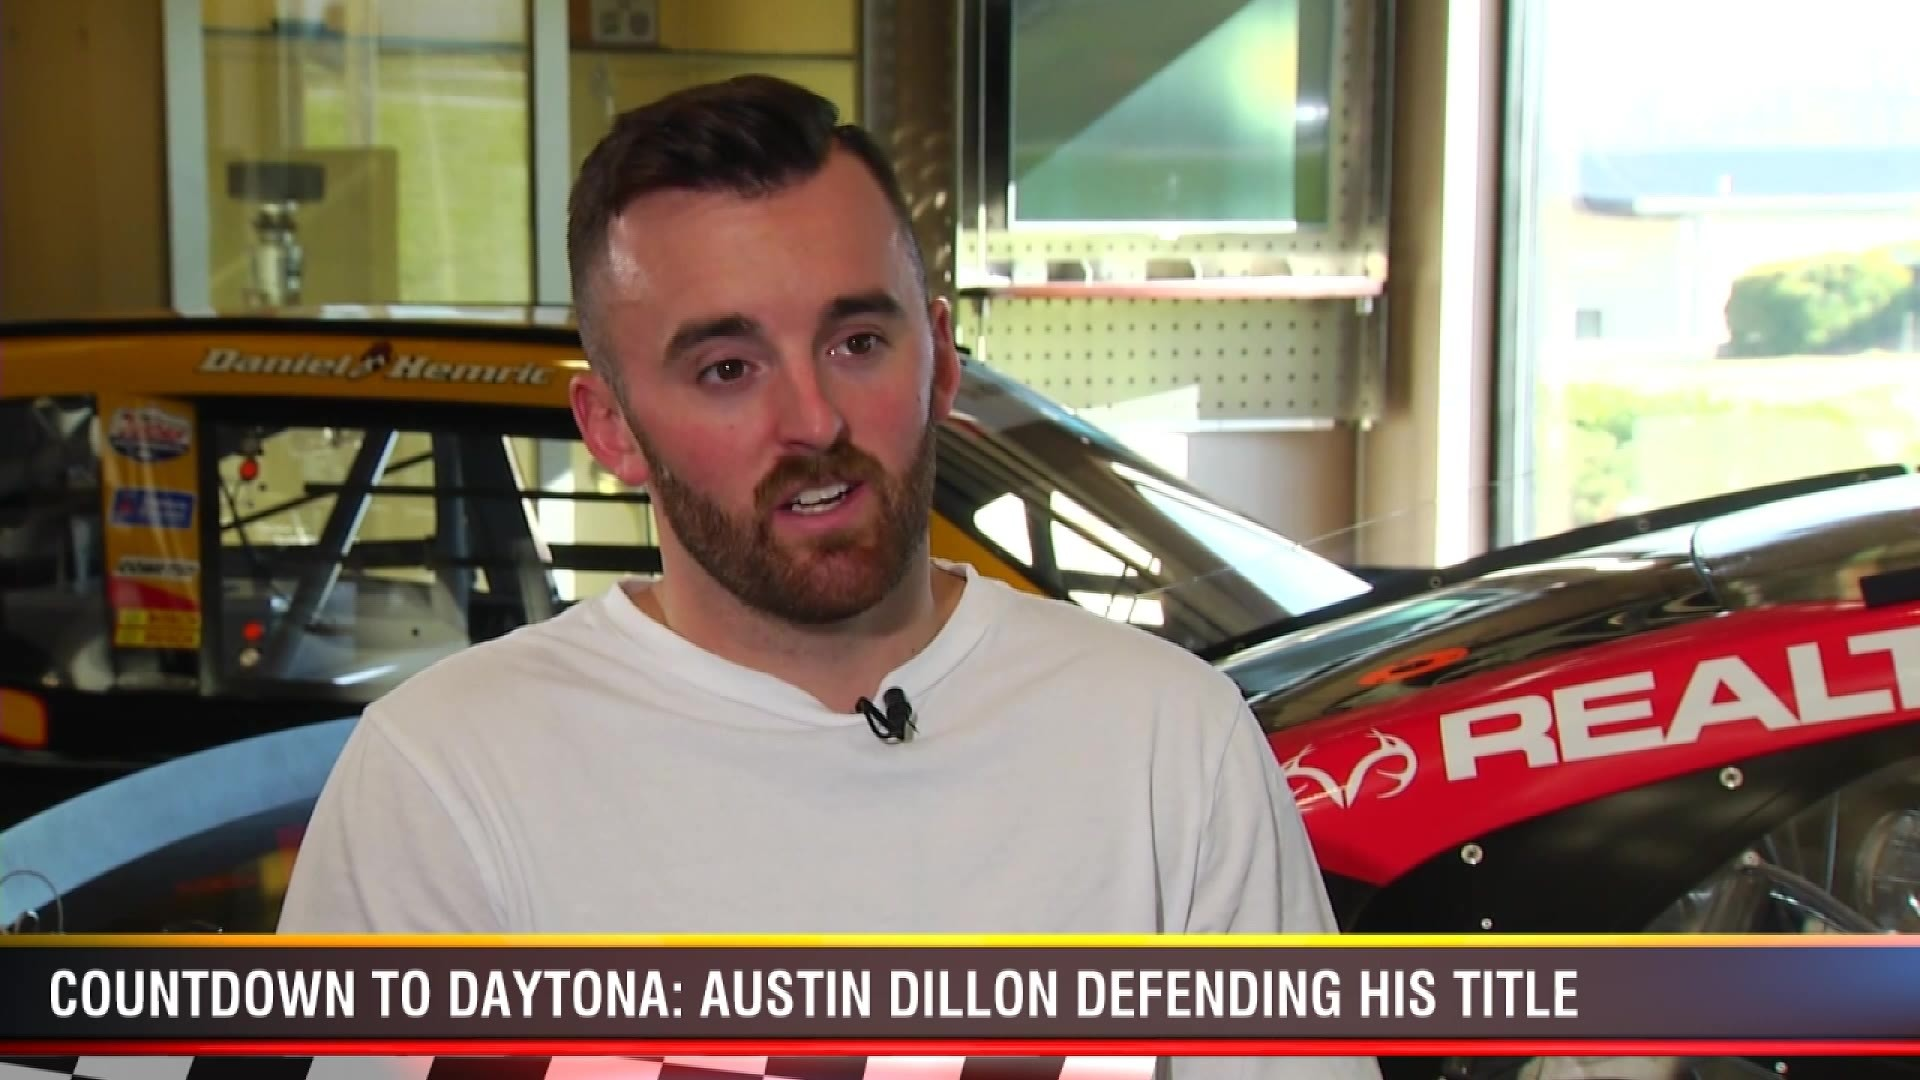 Countdown to Daytona: Dillon ready to defend his title